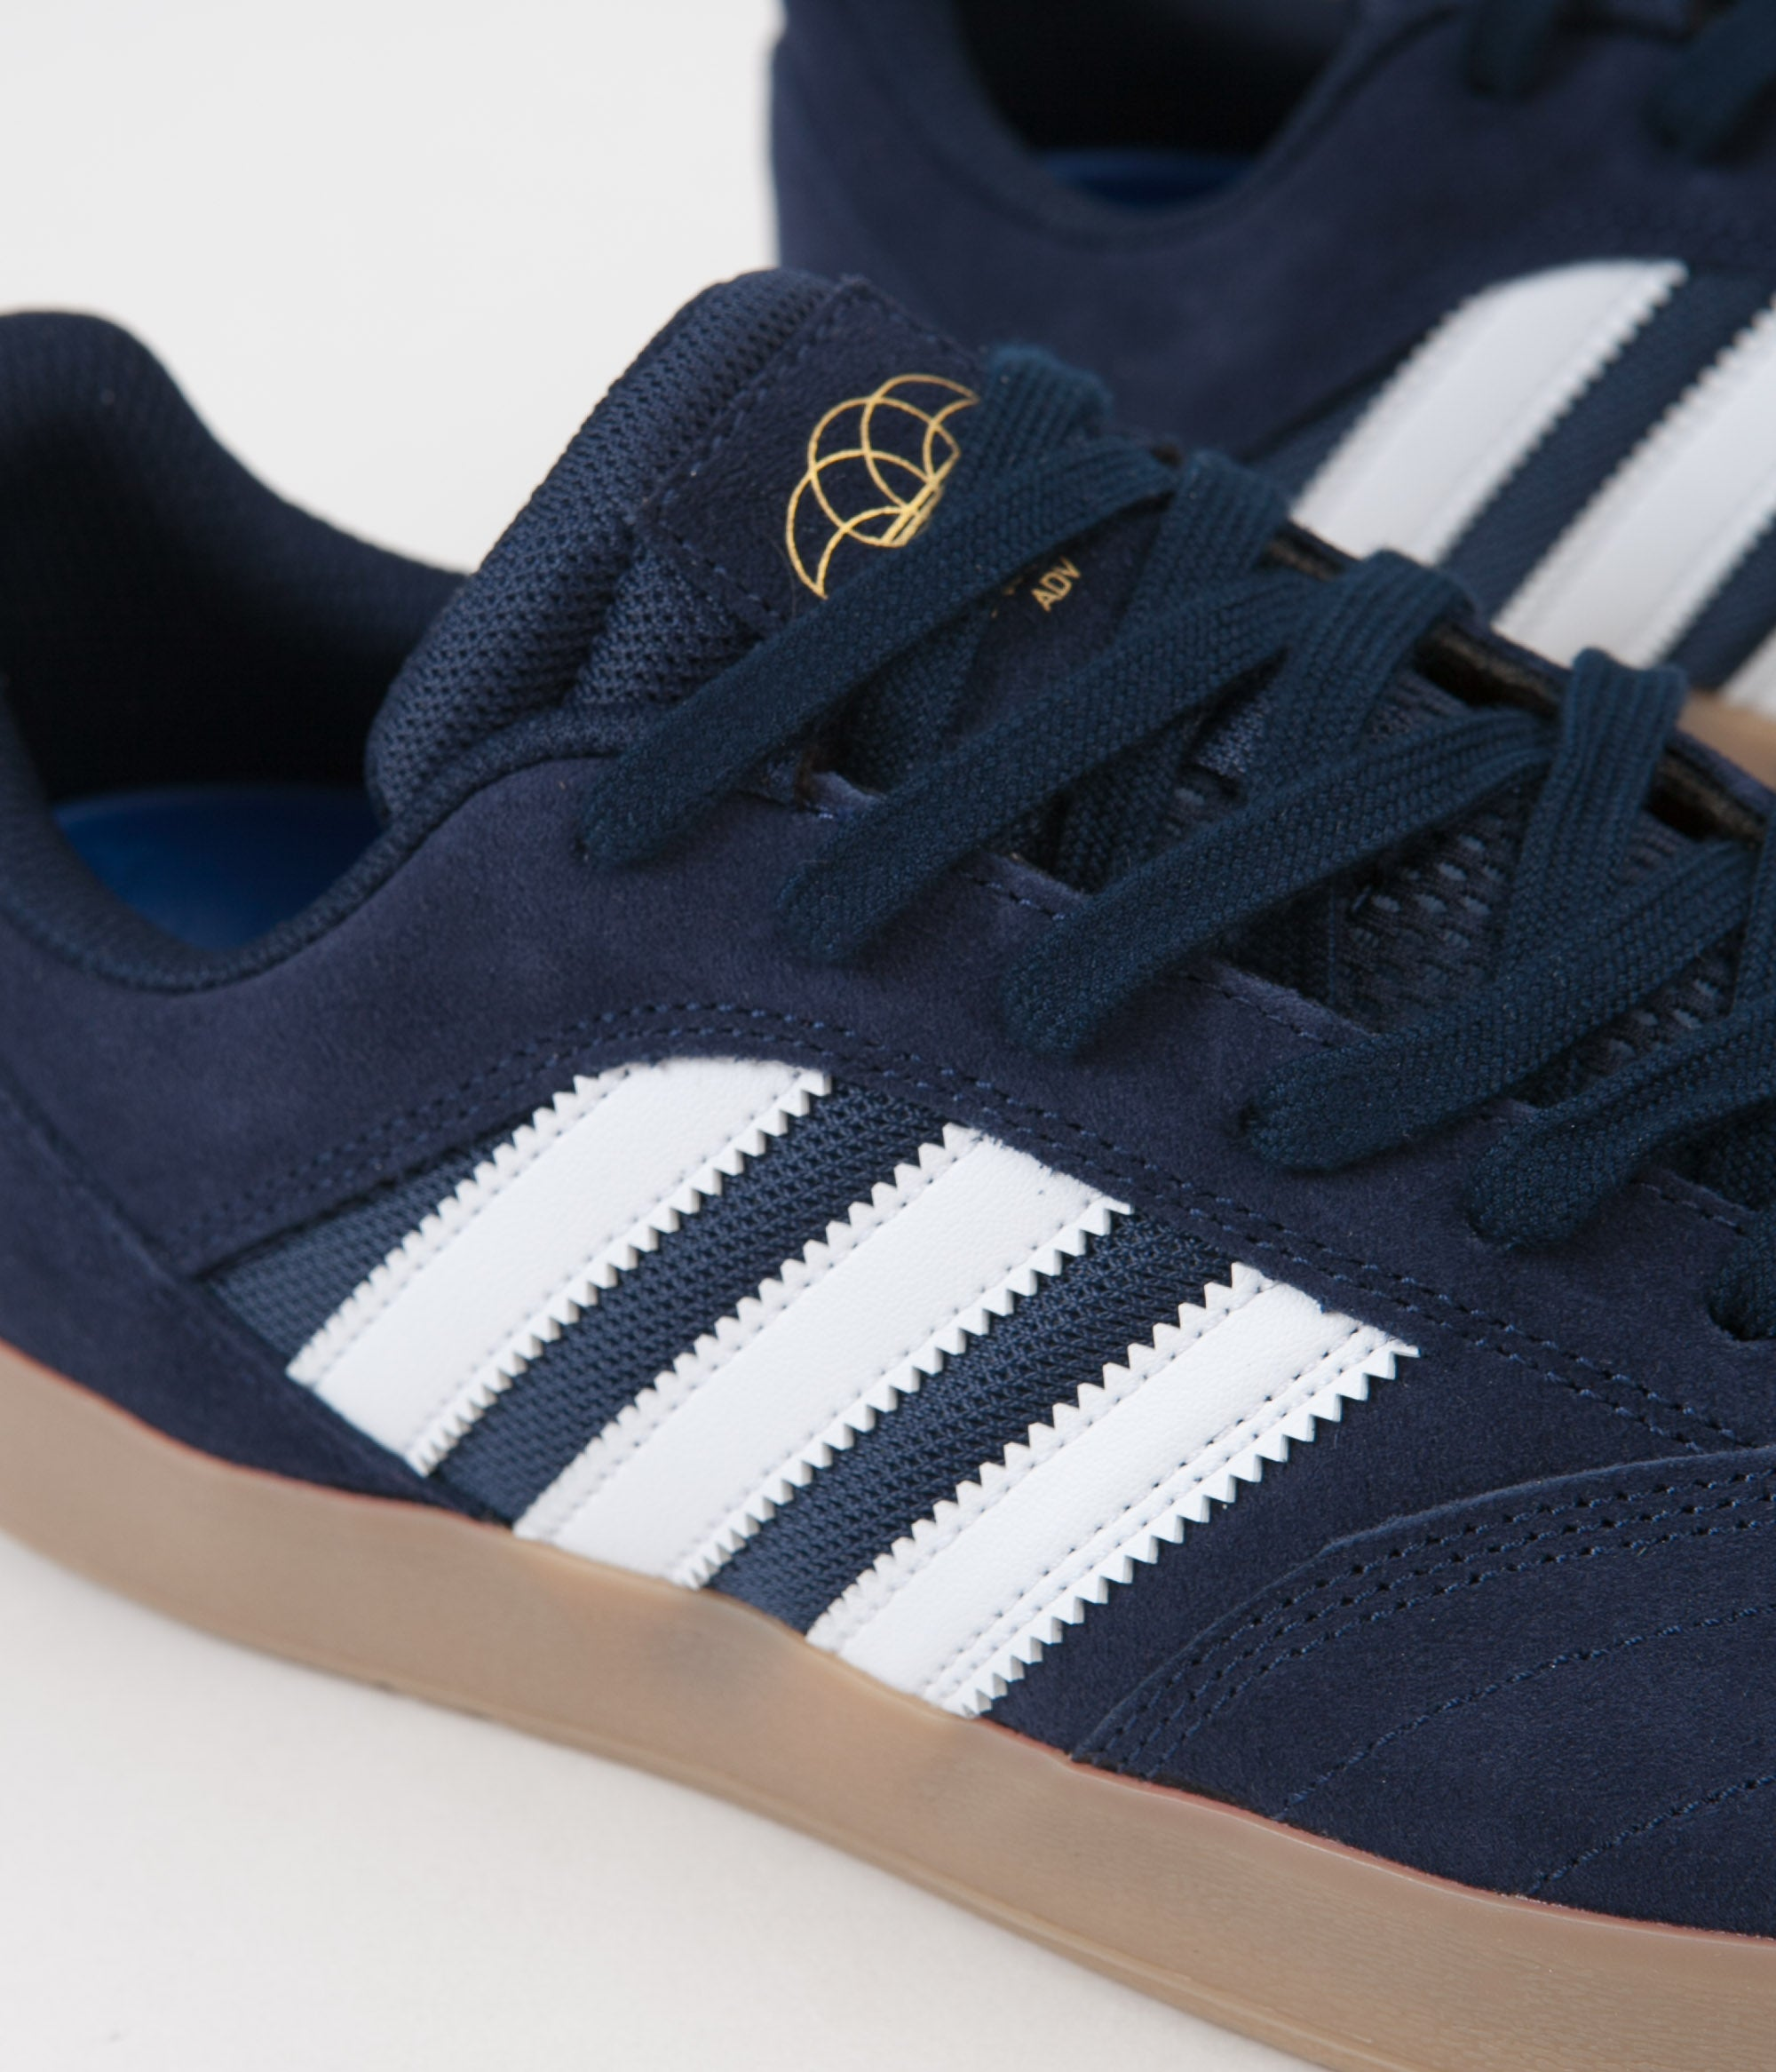 Adidas Suciu ADV II Shoes - Collegiate Navy / FTW White / Gum4